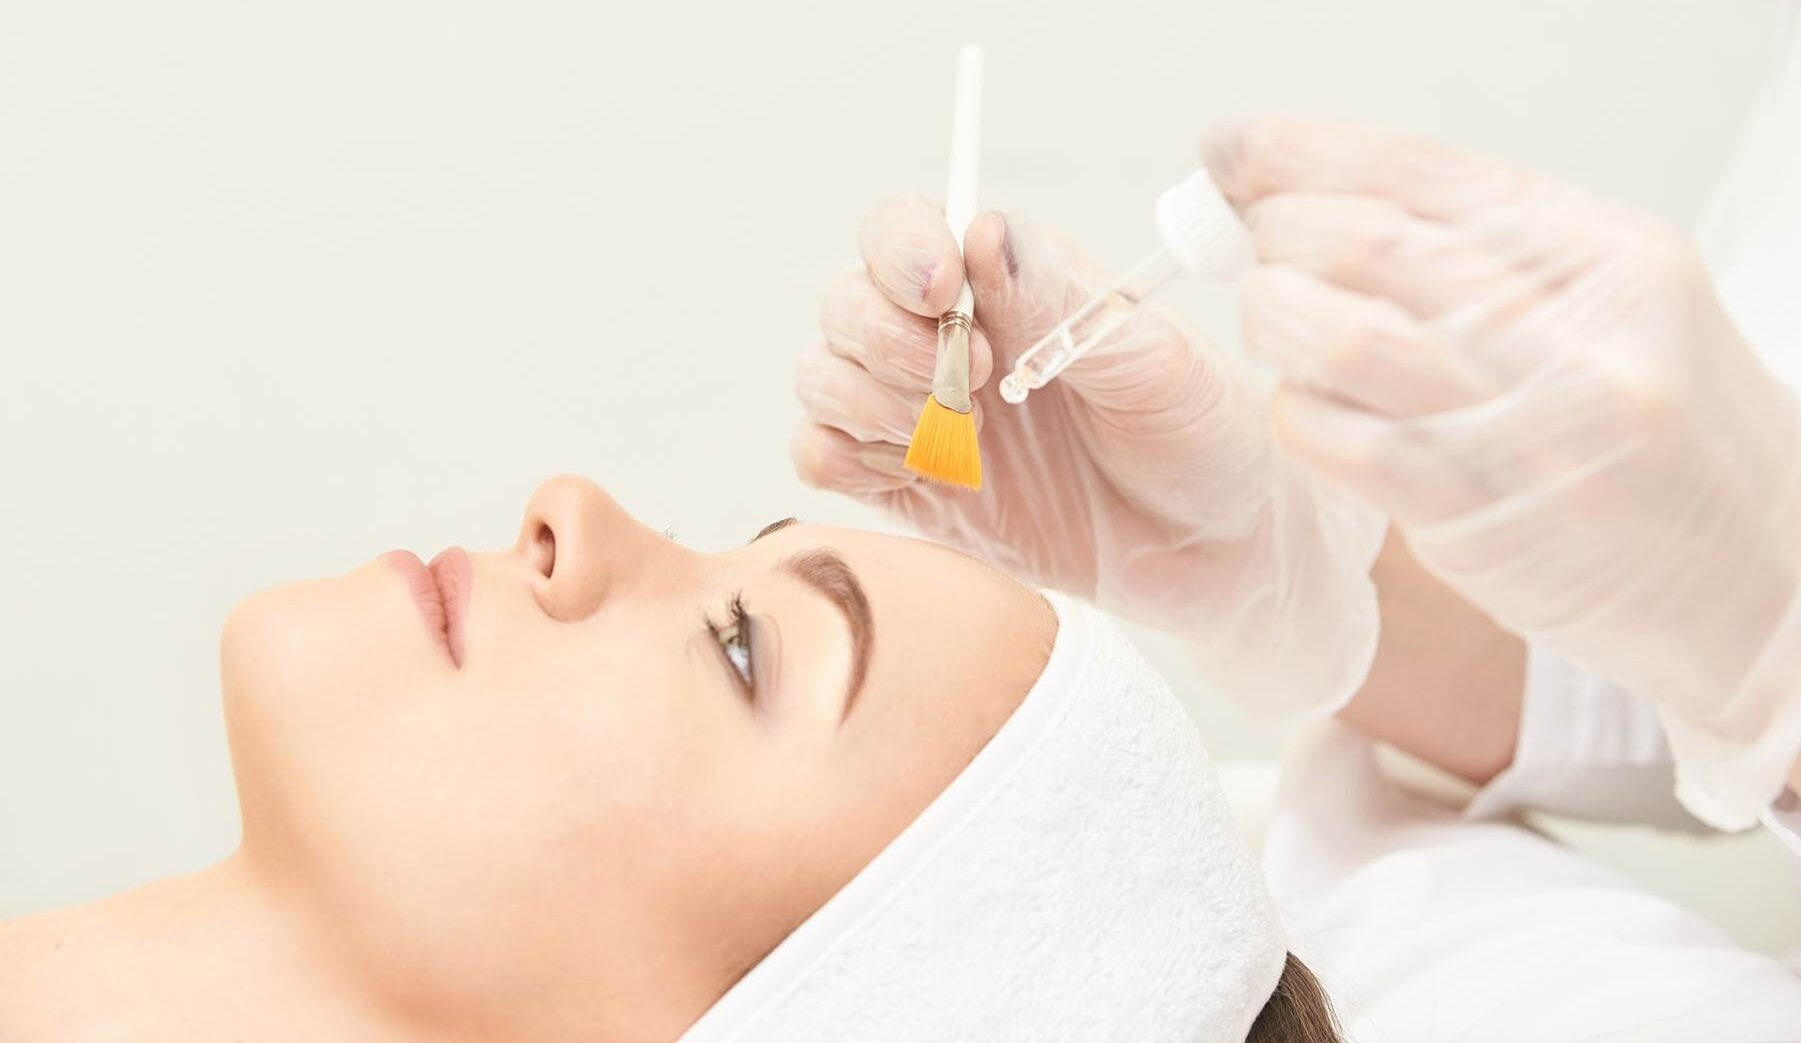 Application of a chemical peel